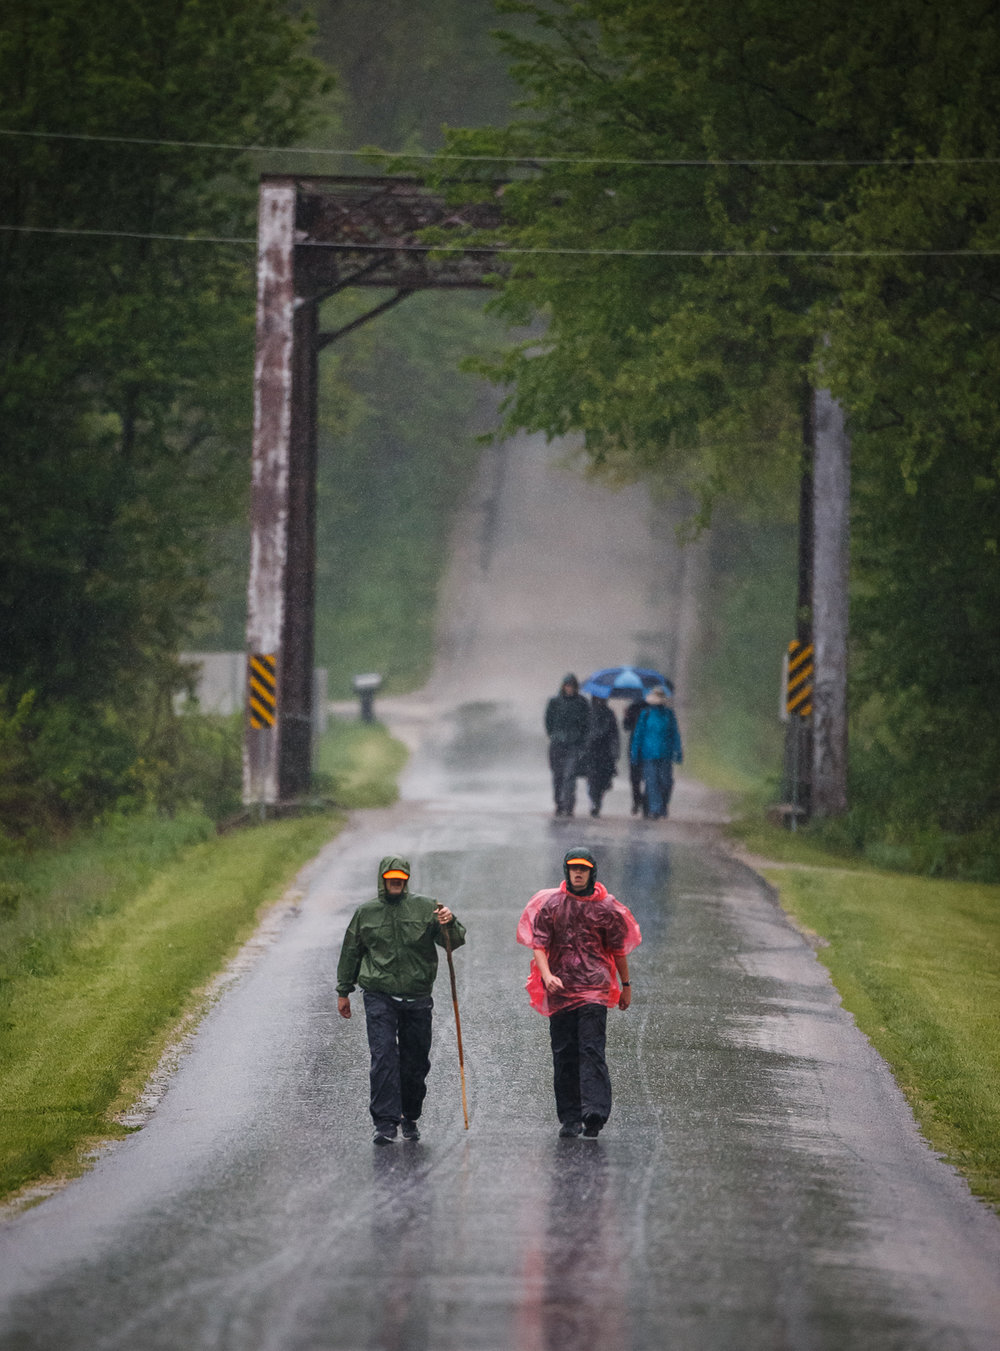 David Dempsey, left, and his son David Dempsey Jr., right, both of Edwardsville, Ill., and members of Troop 1072, make their way along the Lincoln Trail for the first time in pouring rain during the Lincoln Trail Hike, Saturday, April 29, 2017, north of Springfield, Ill. The 19-mile hike takes Boy Scouts from New Salem Historic Site to Stuart Park in Springfield.  [Justin L. Fowler/The State Journal-Register]